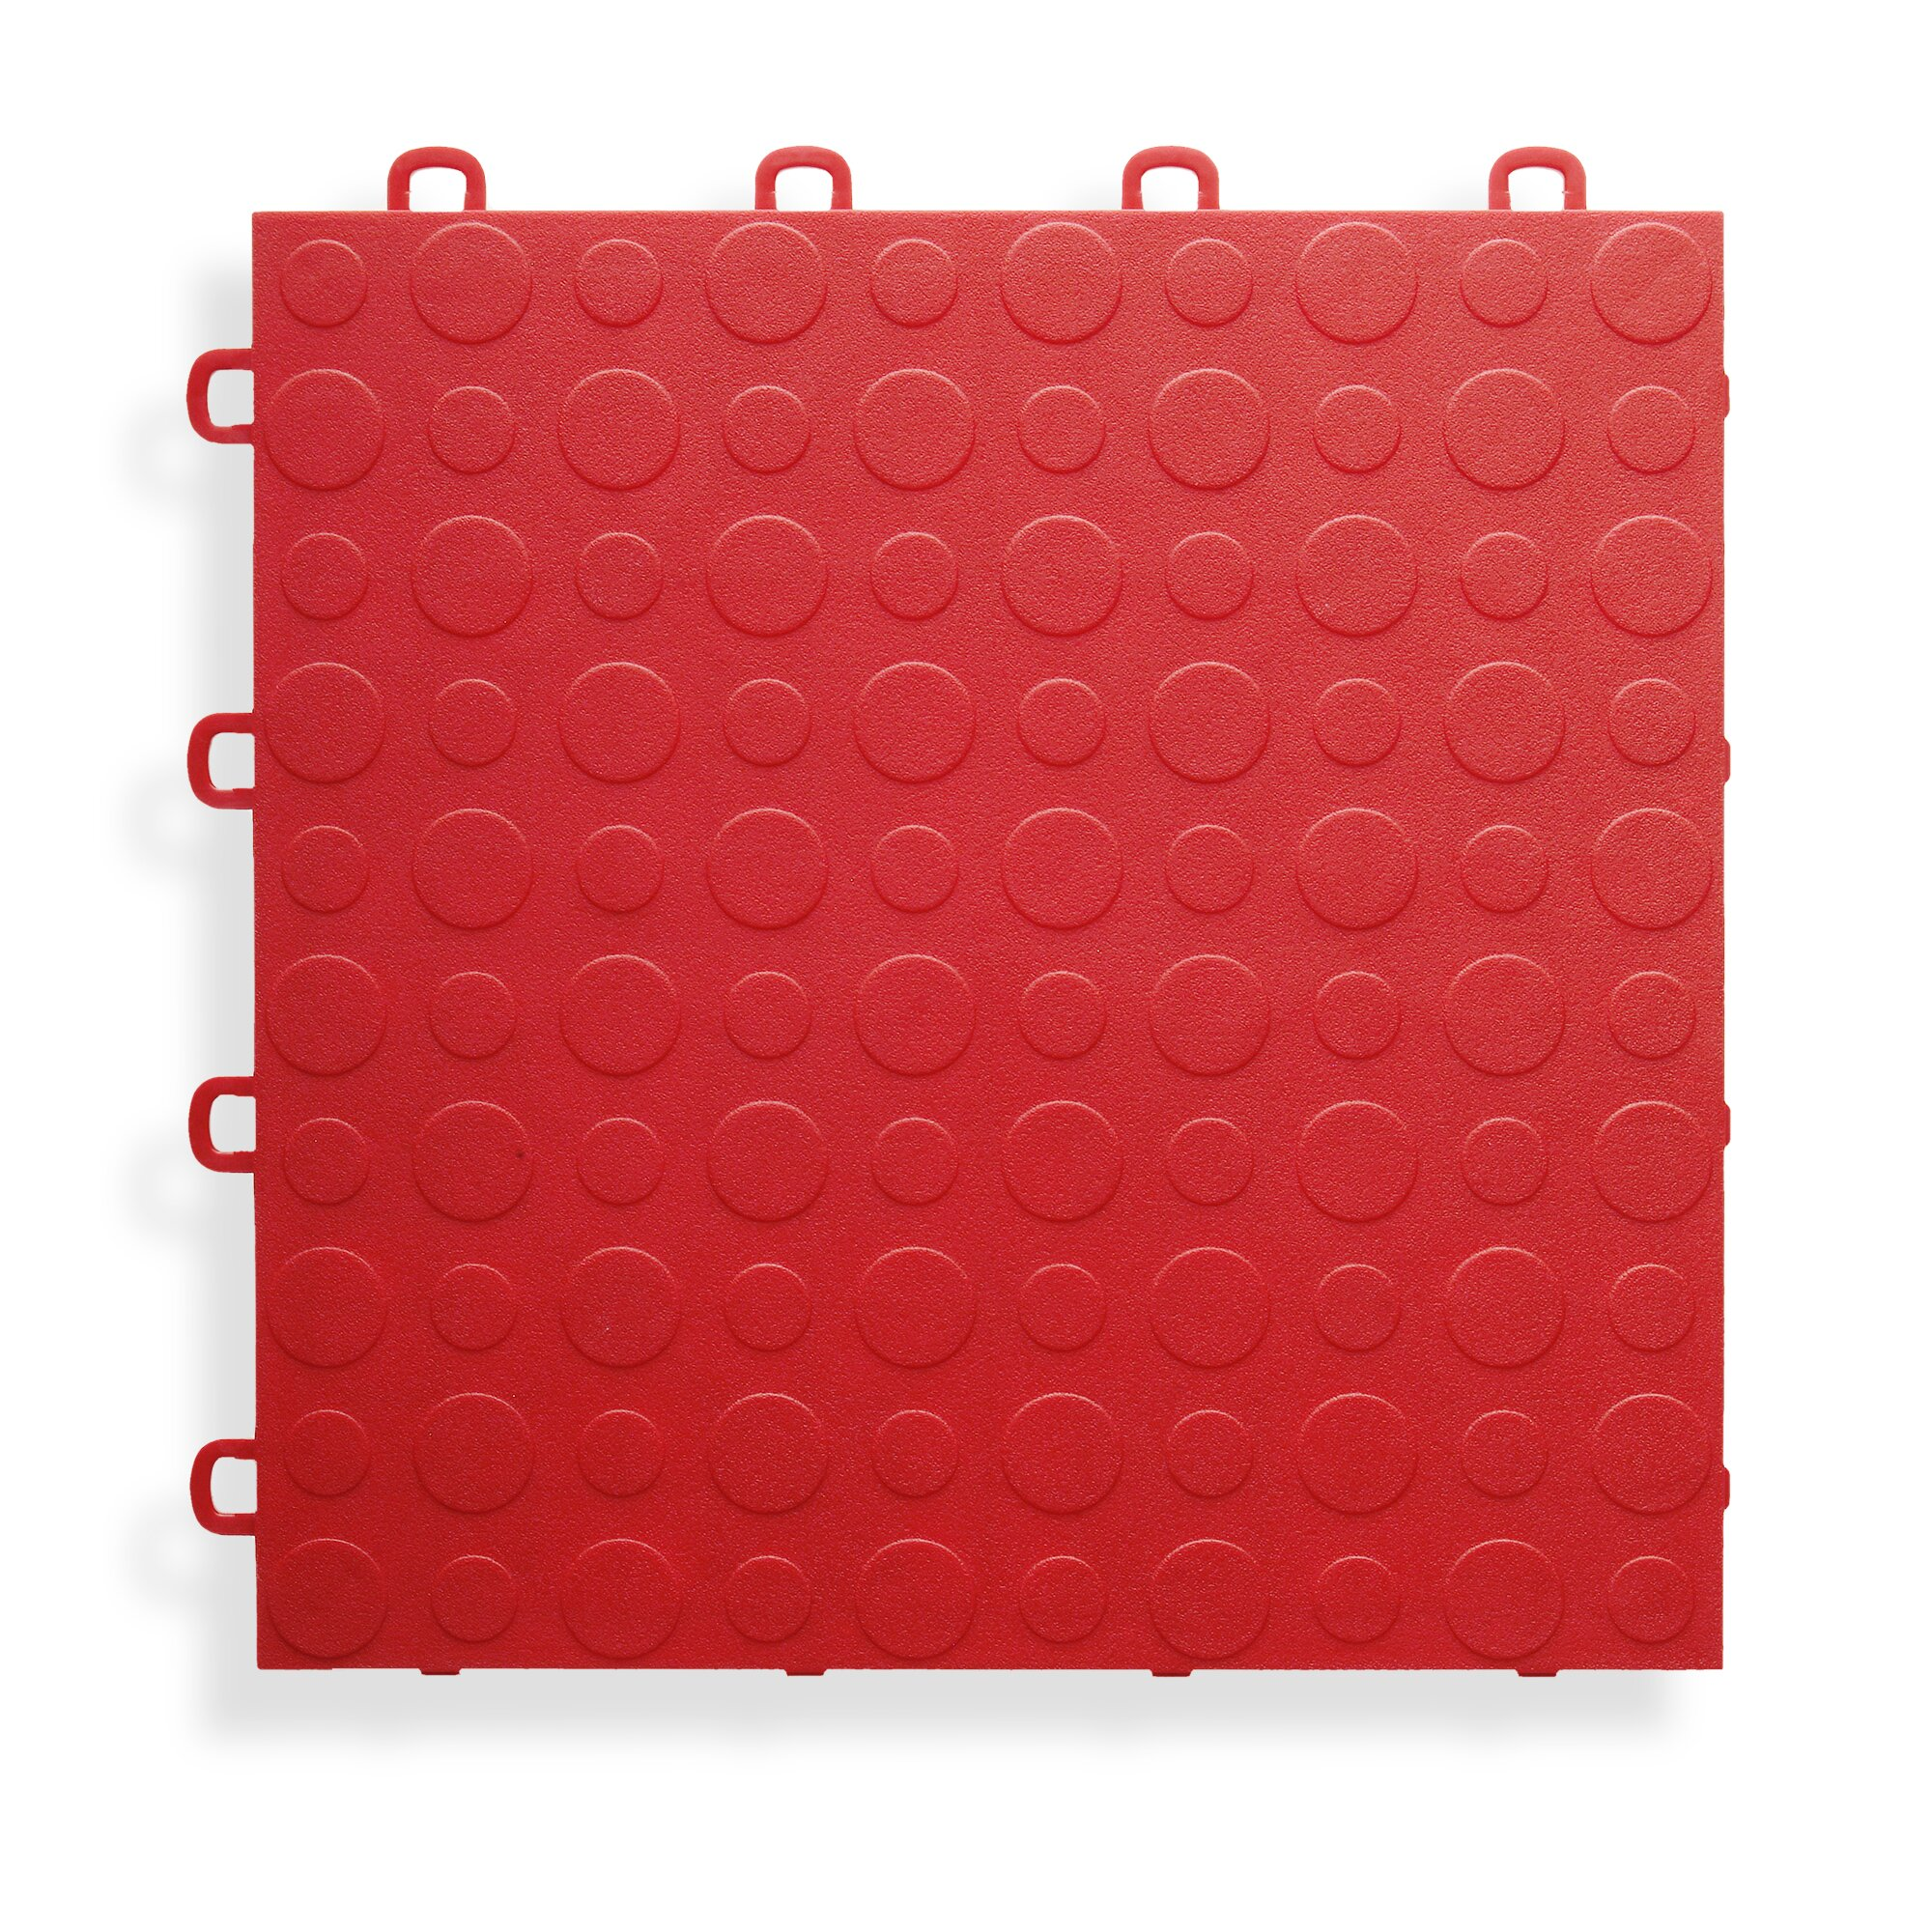 BlockTile 12 X 12 Garage Flooring Tile In Red Reviews Way